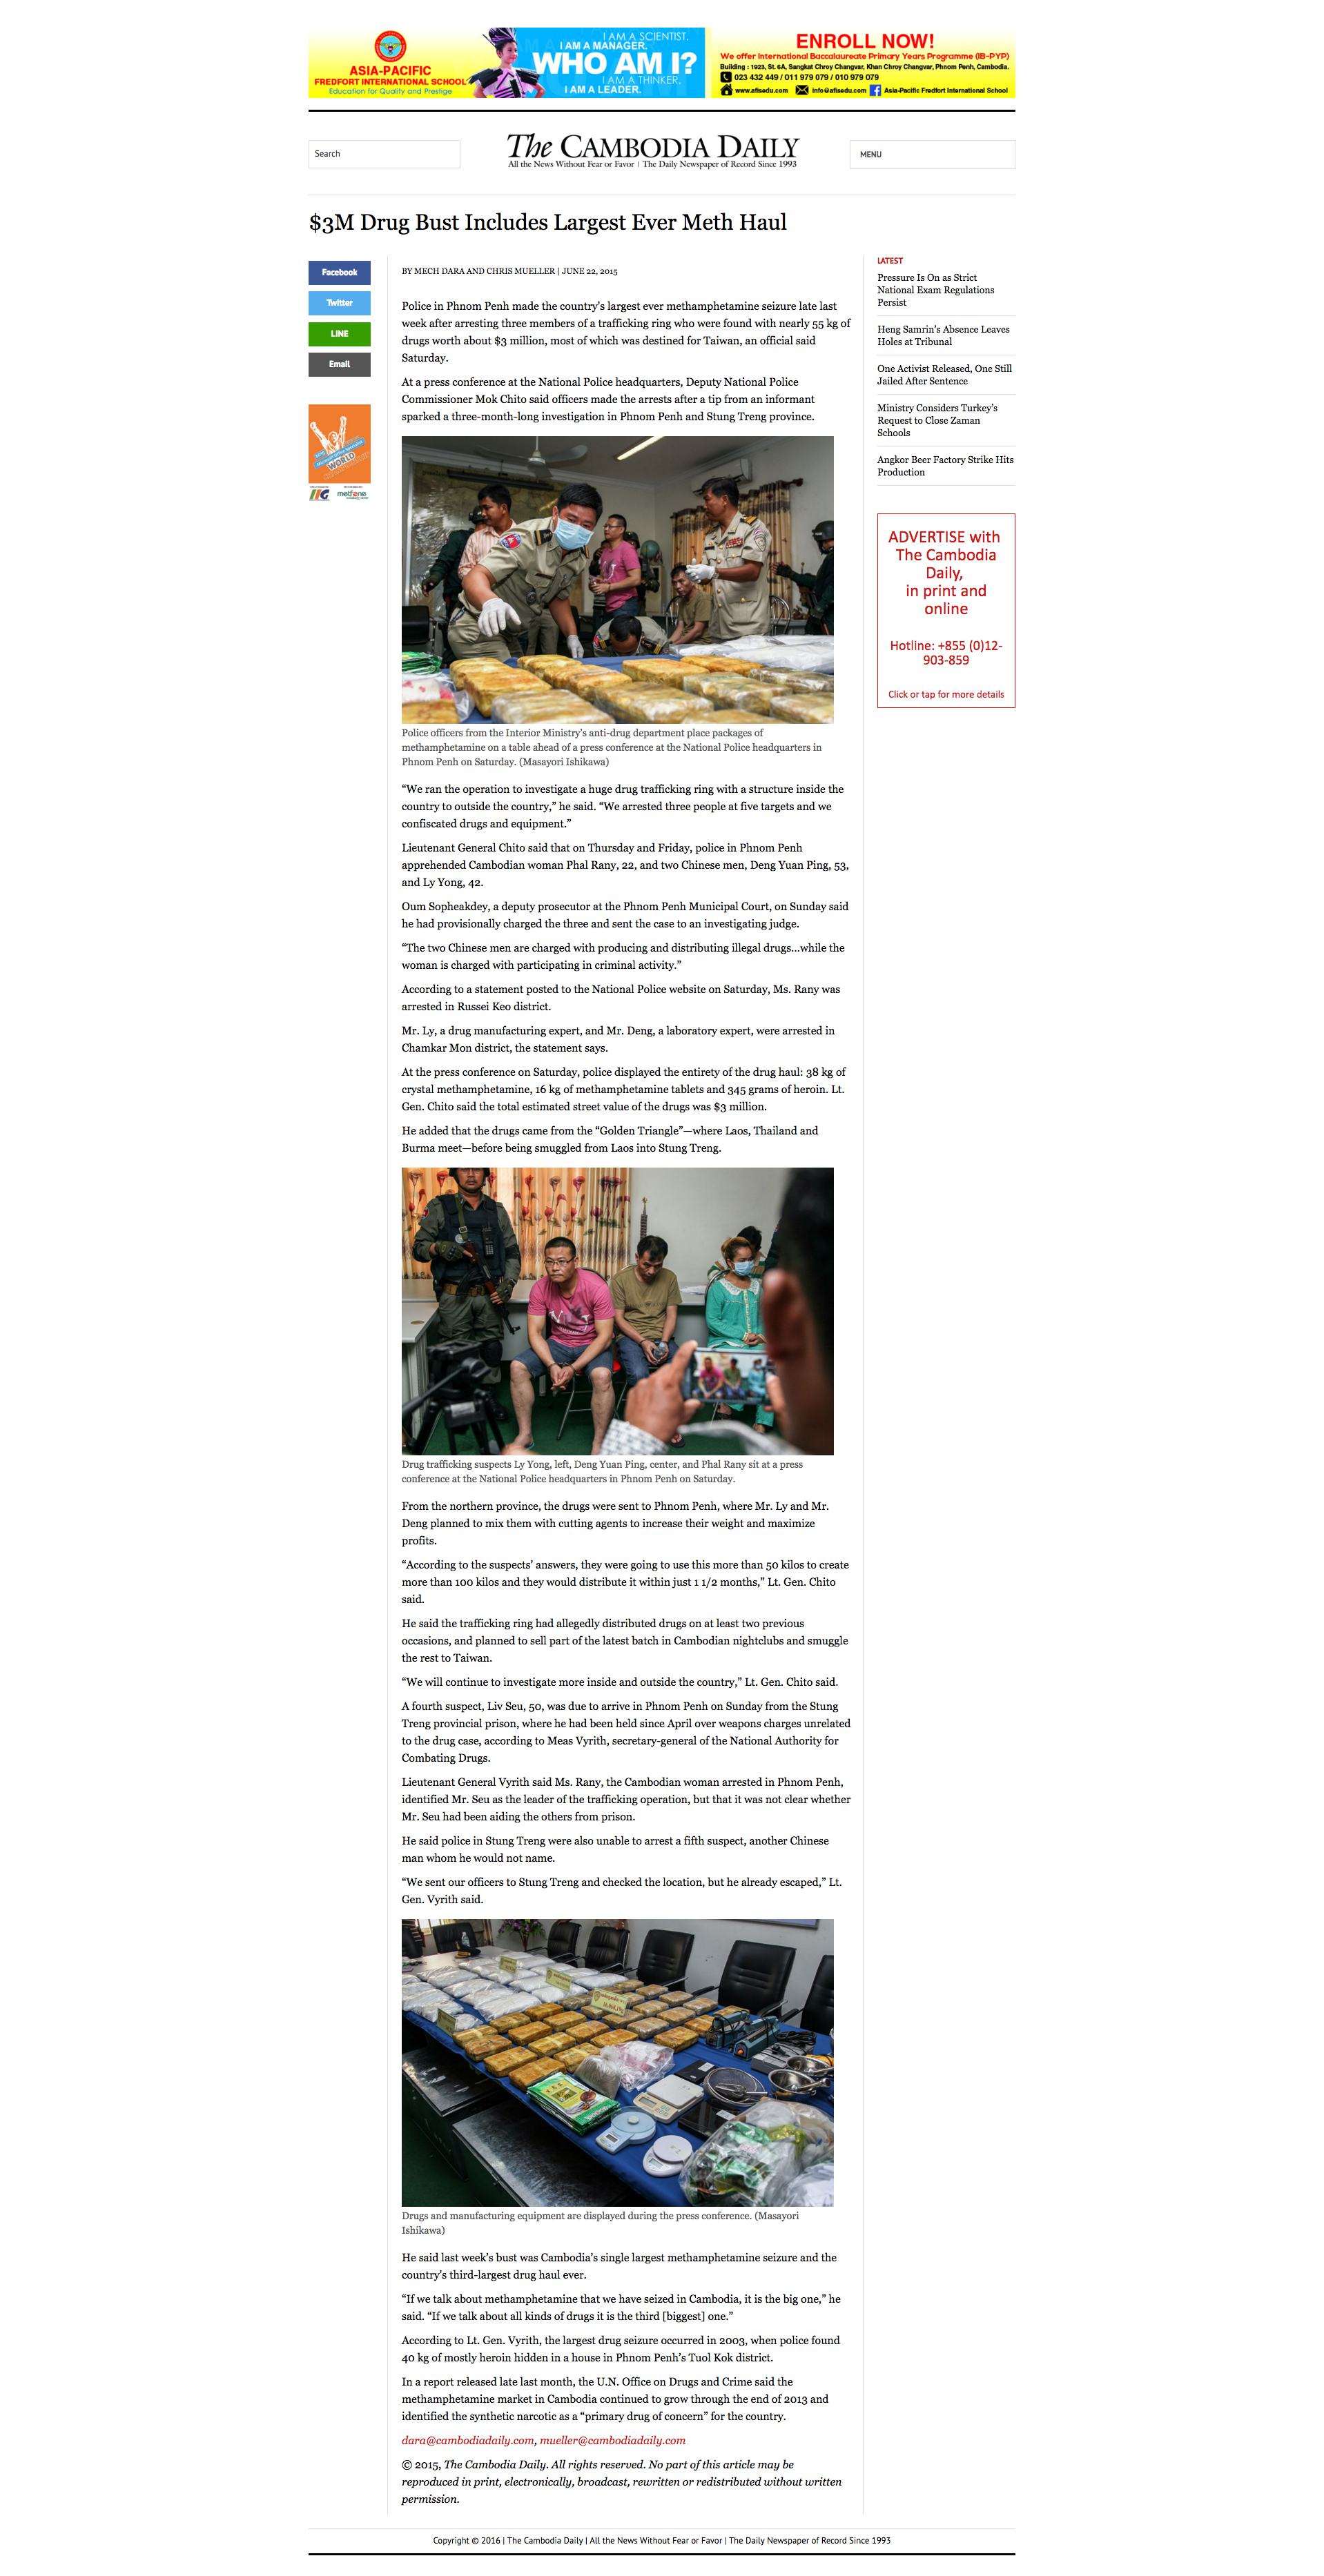 screencapture-cambodiadaily-archives-3m-drug-bust-includes-largest-ever-meth-haul-86060-147197898578